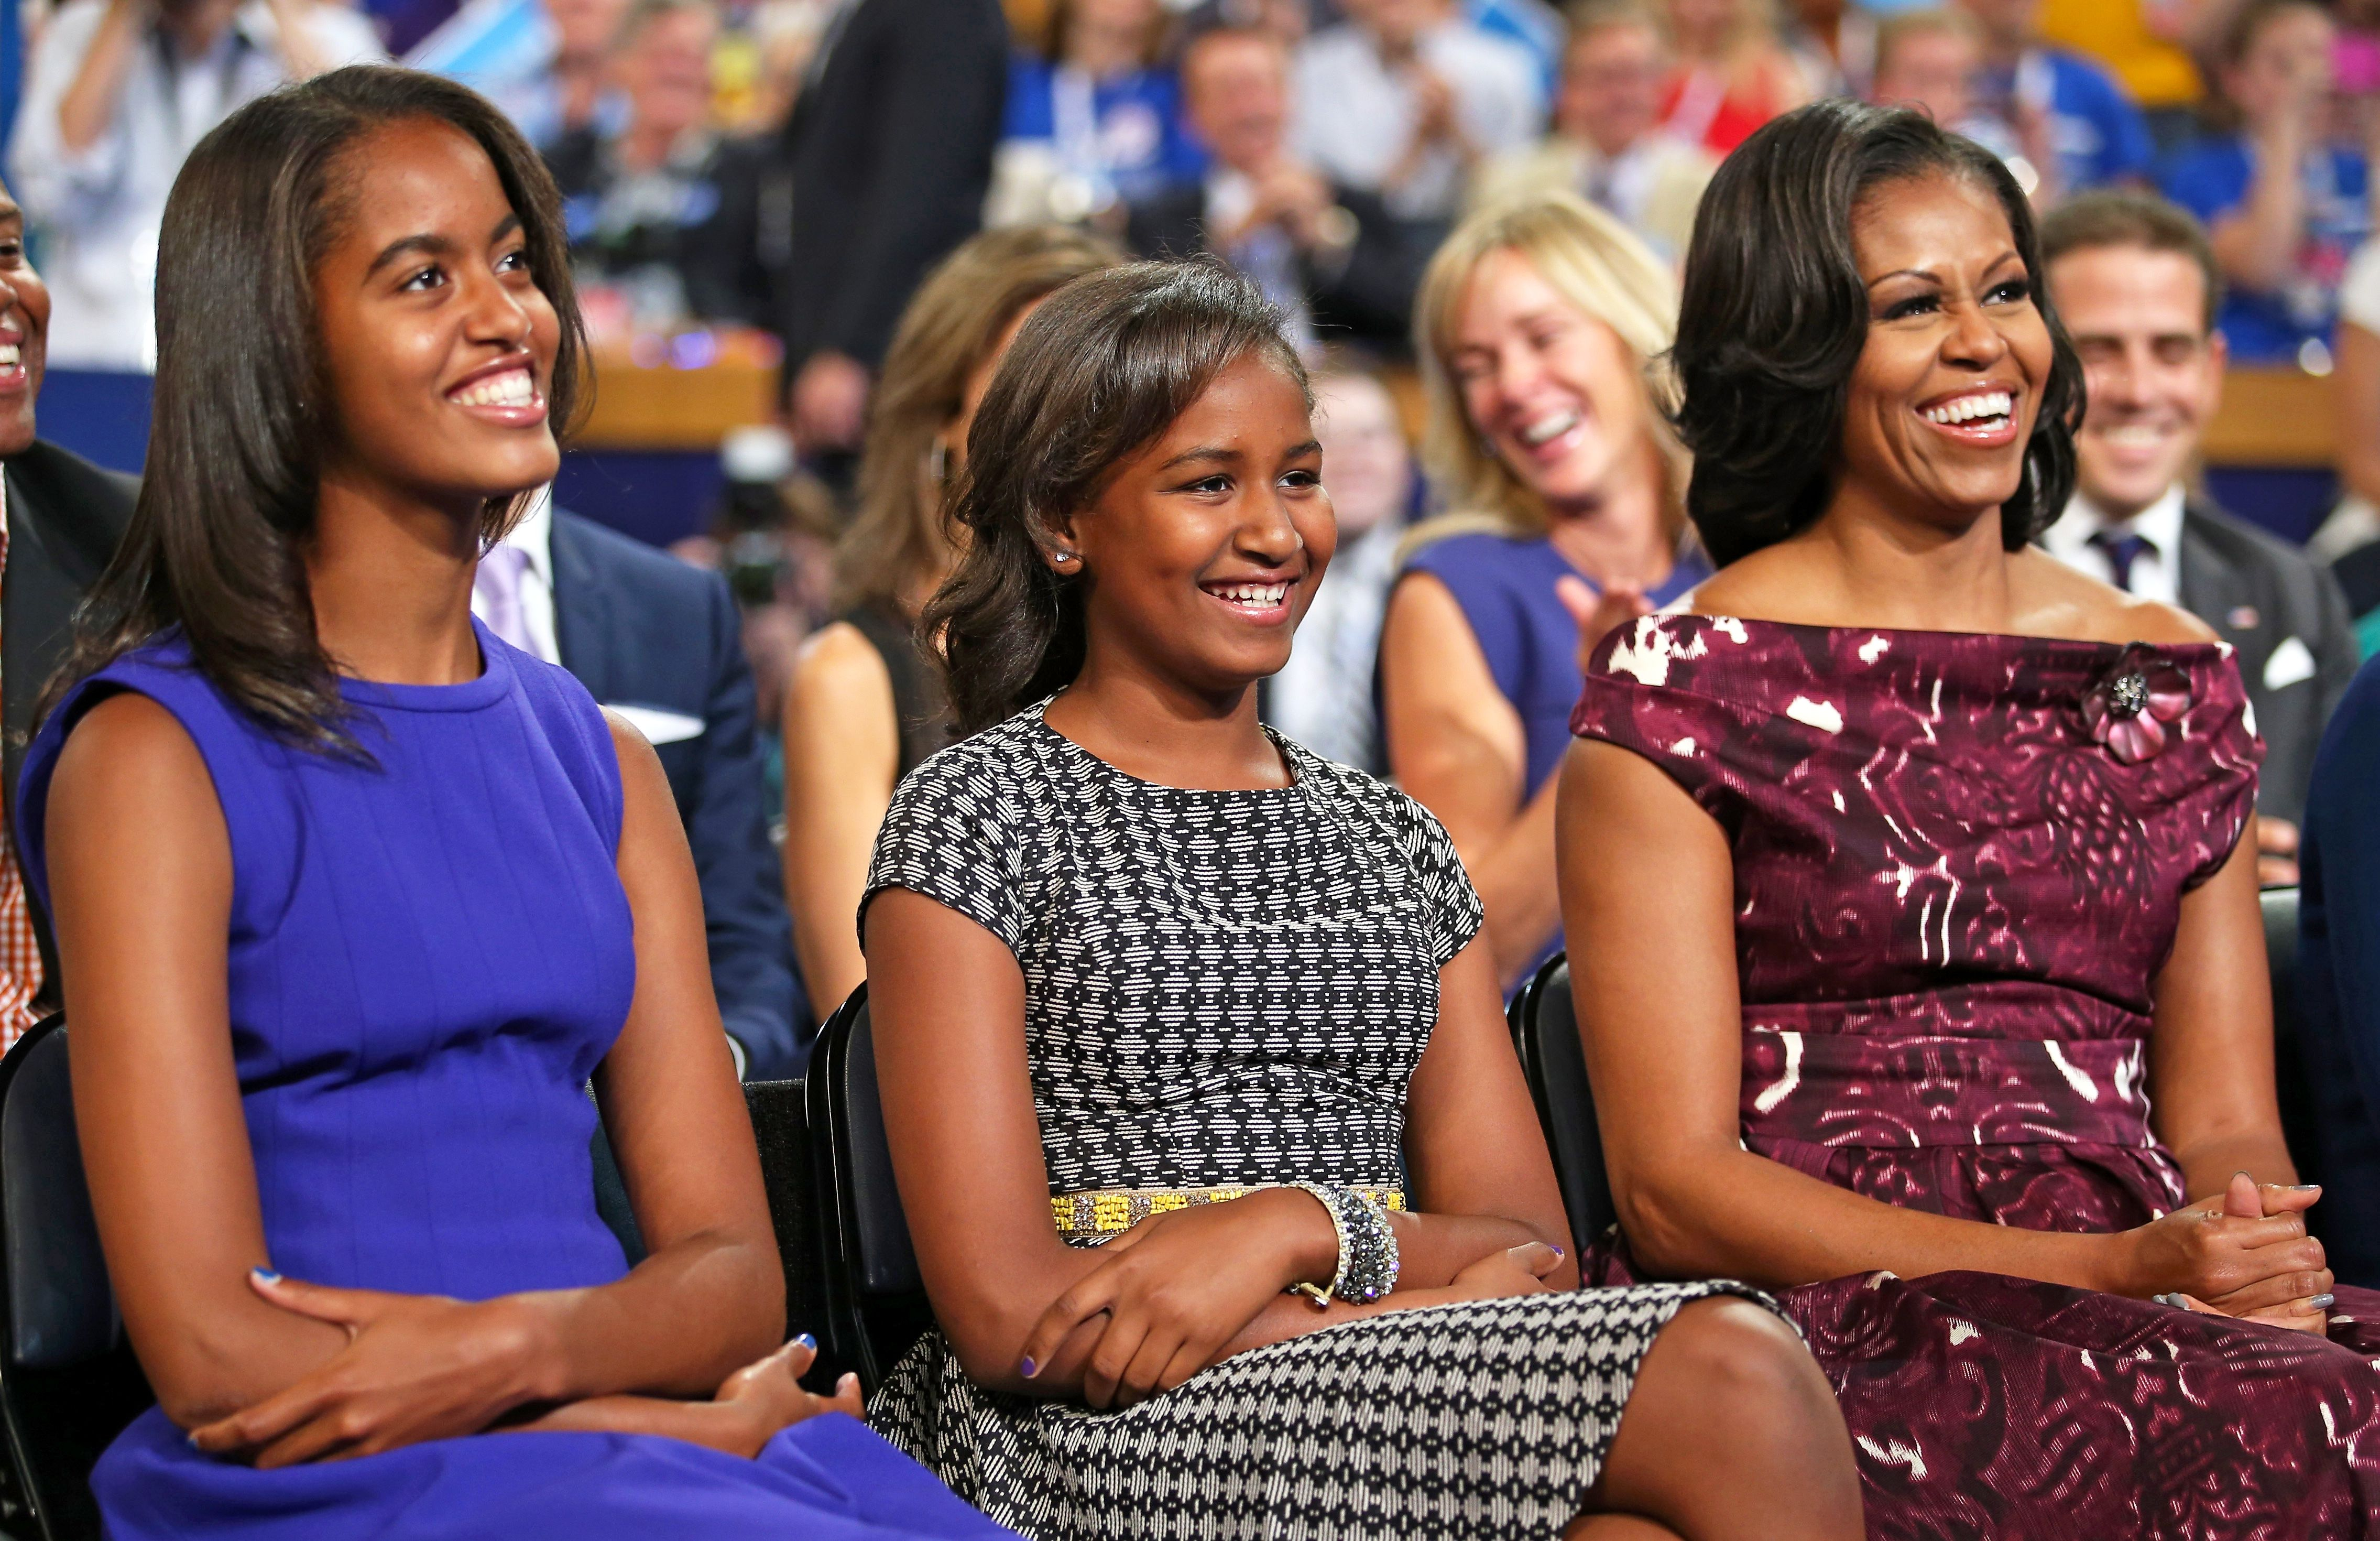 Michelle Obama Gets Real About the 'Sting of Gender Roles' as a New Parent